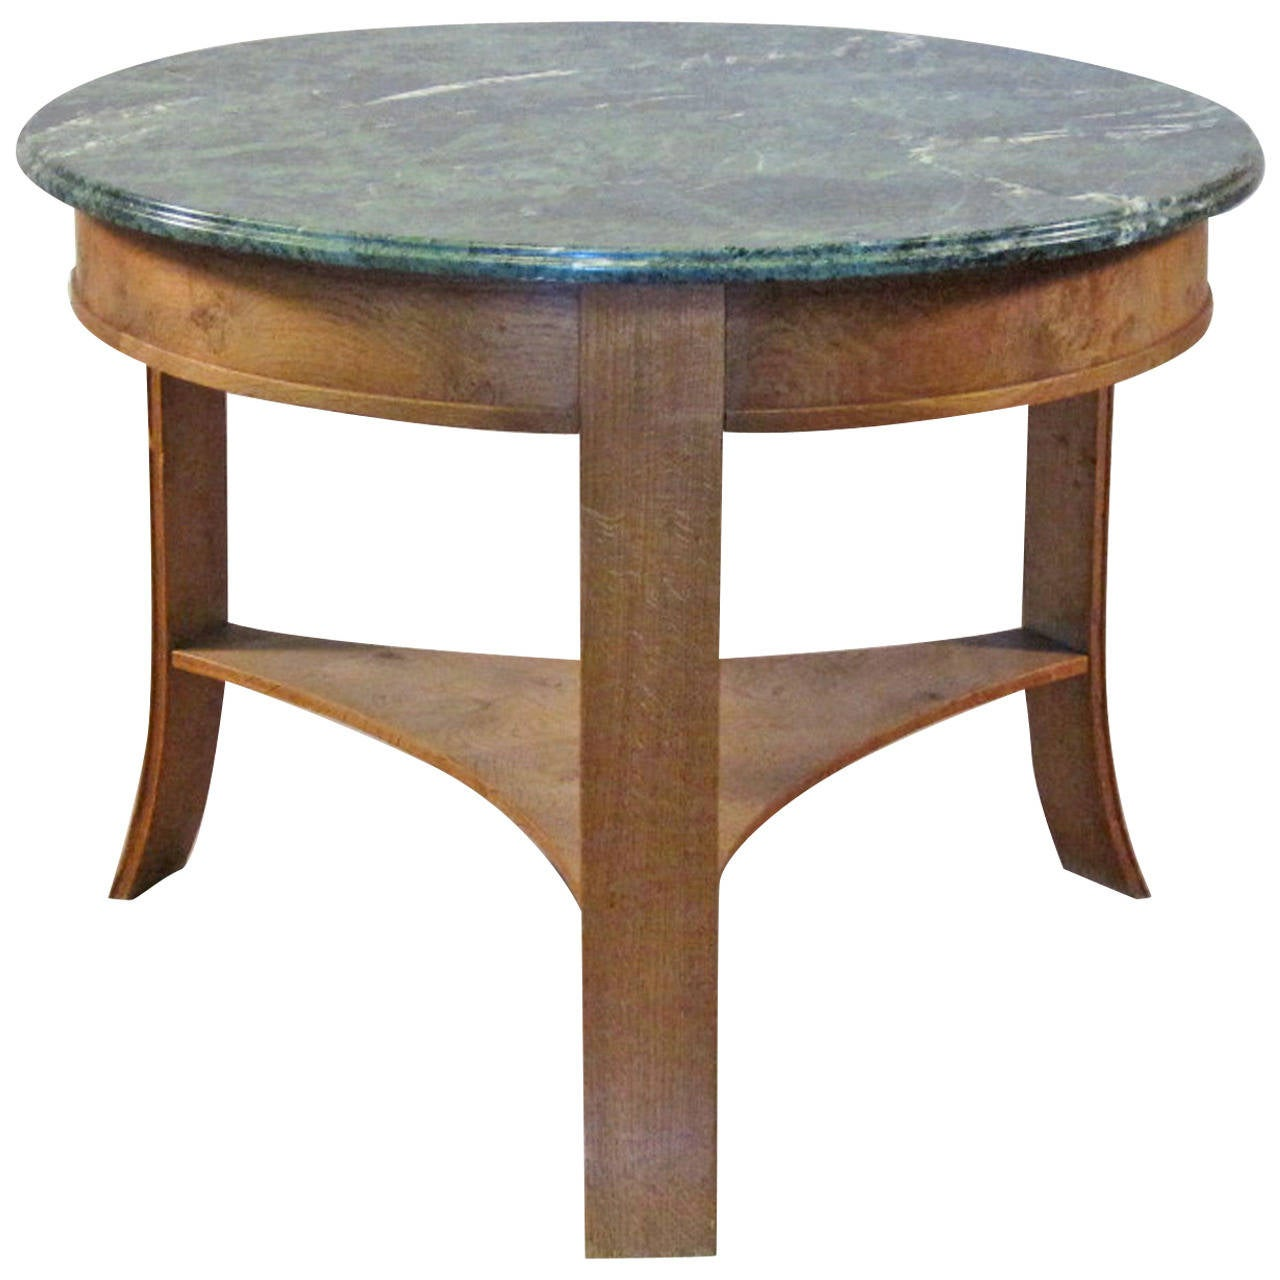 1940s 1950s circular oak center table with green marble for Marble table tops for sale